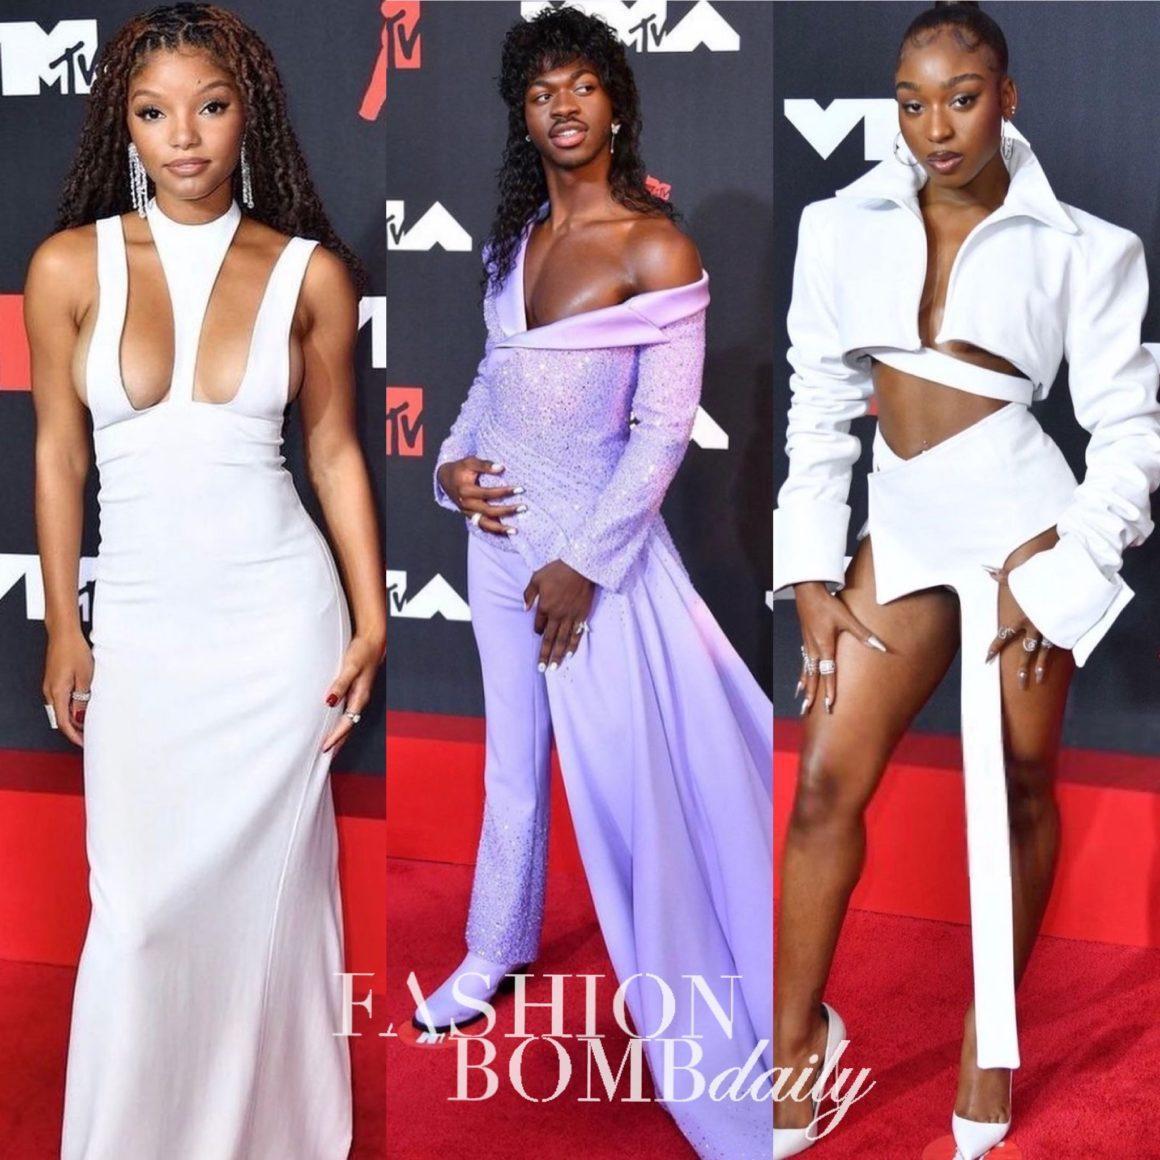 Top 10 Best Dressed at the 2021 MTV Video Music Awards Featuring Lil Nas X in Versace, Normani in Patrycja Pagas, Chloe Bailey in Marni With Halle Bailey in Monot, and More + Other Big Moments